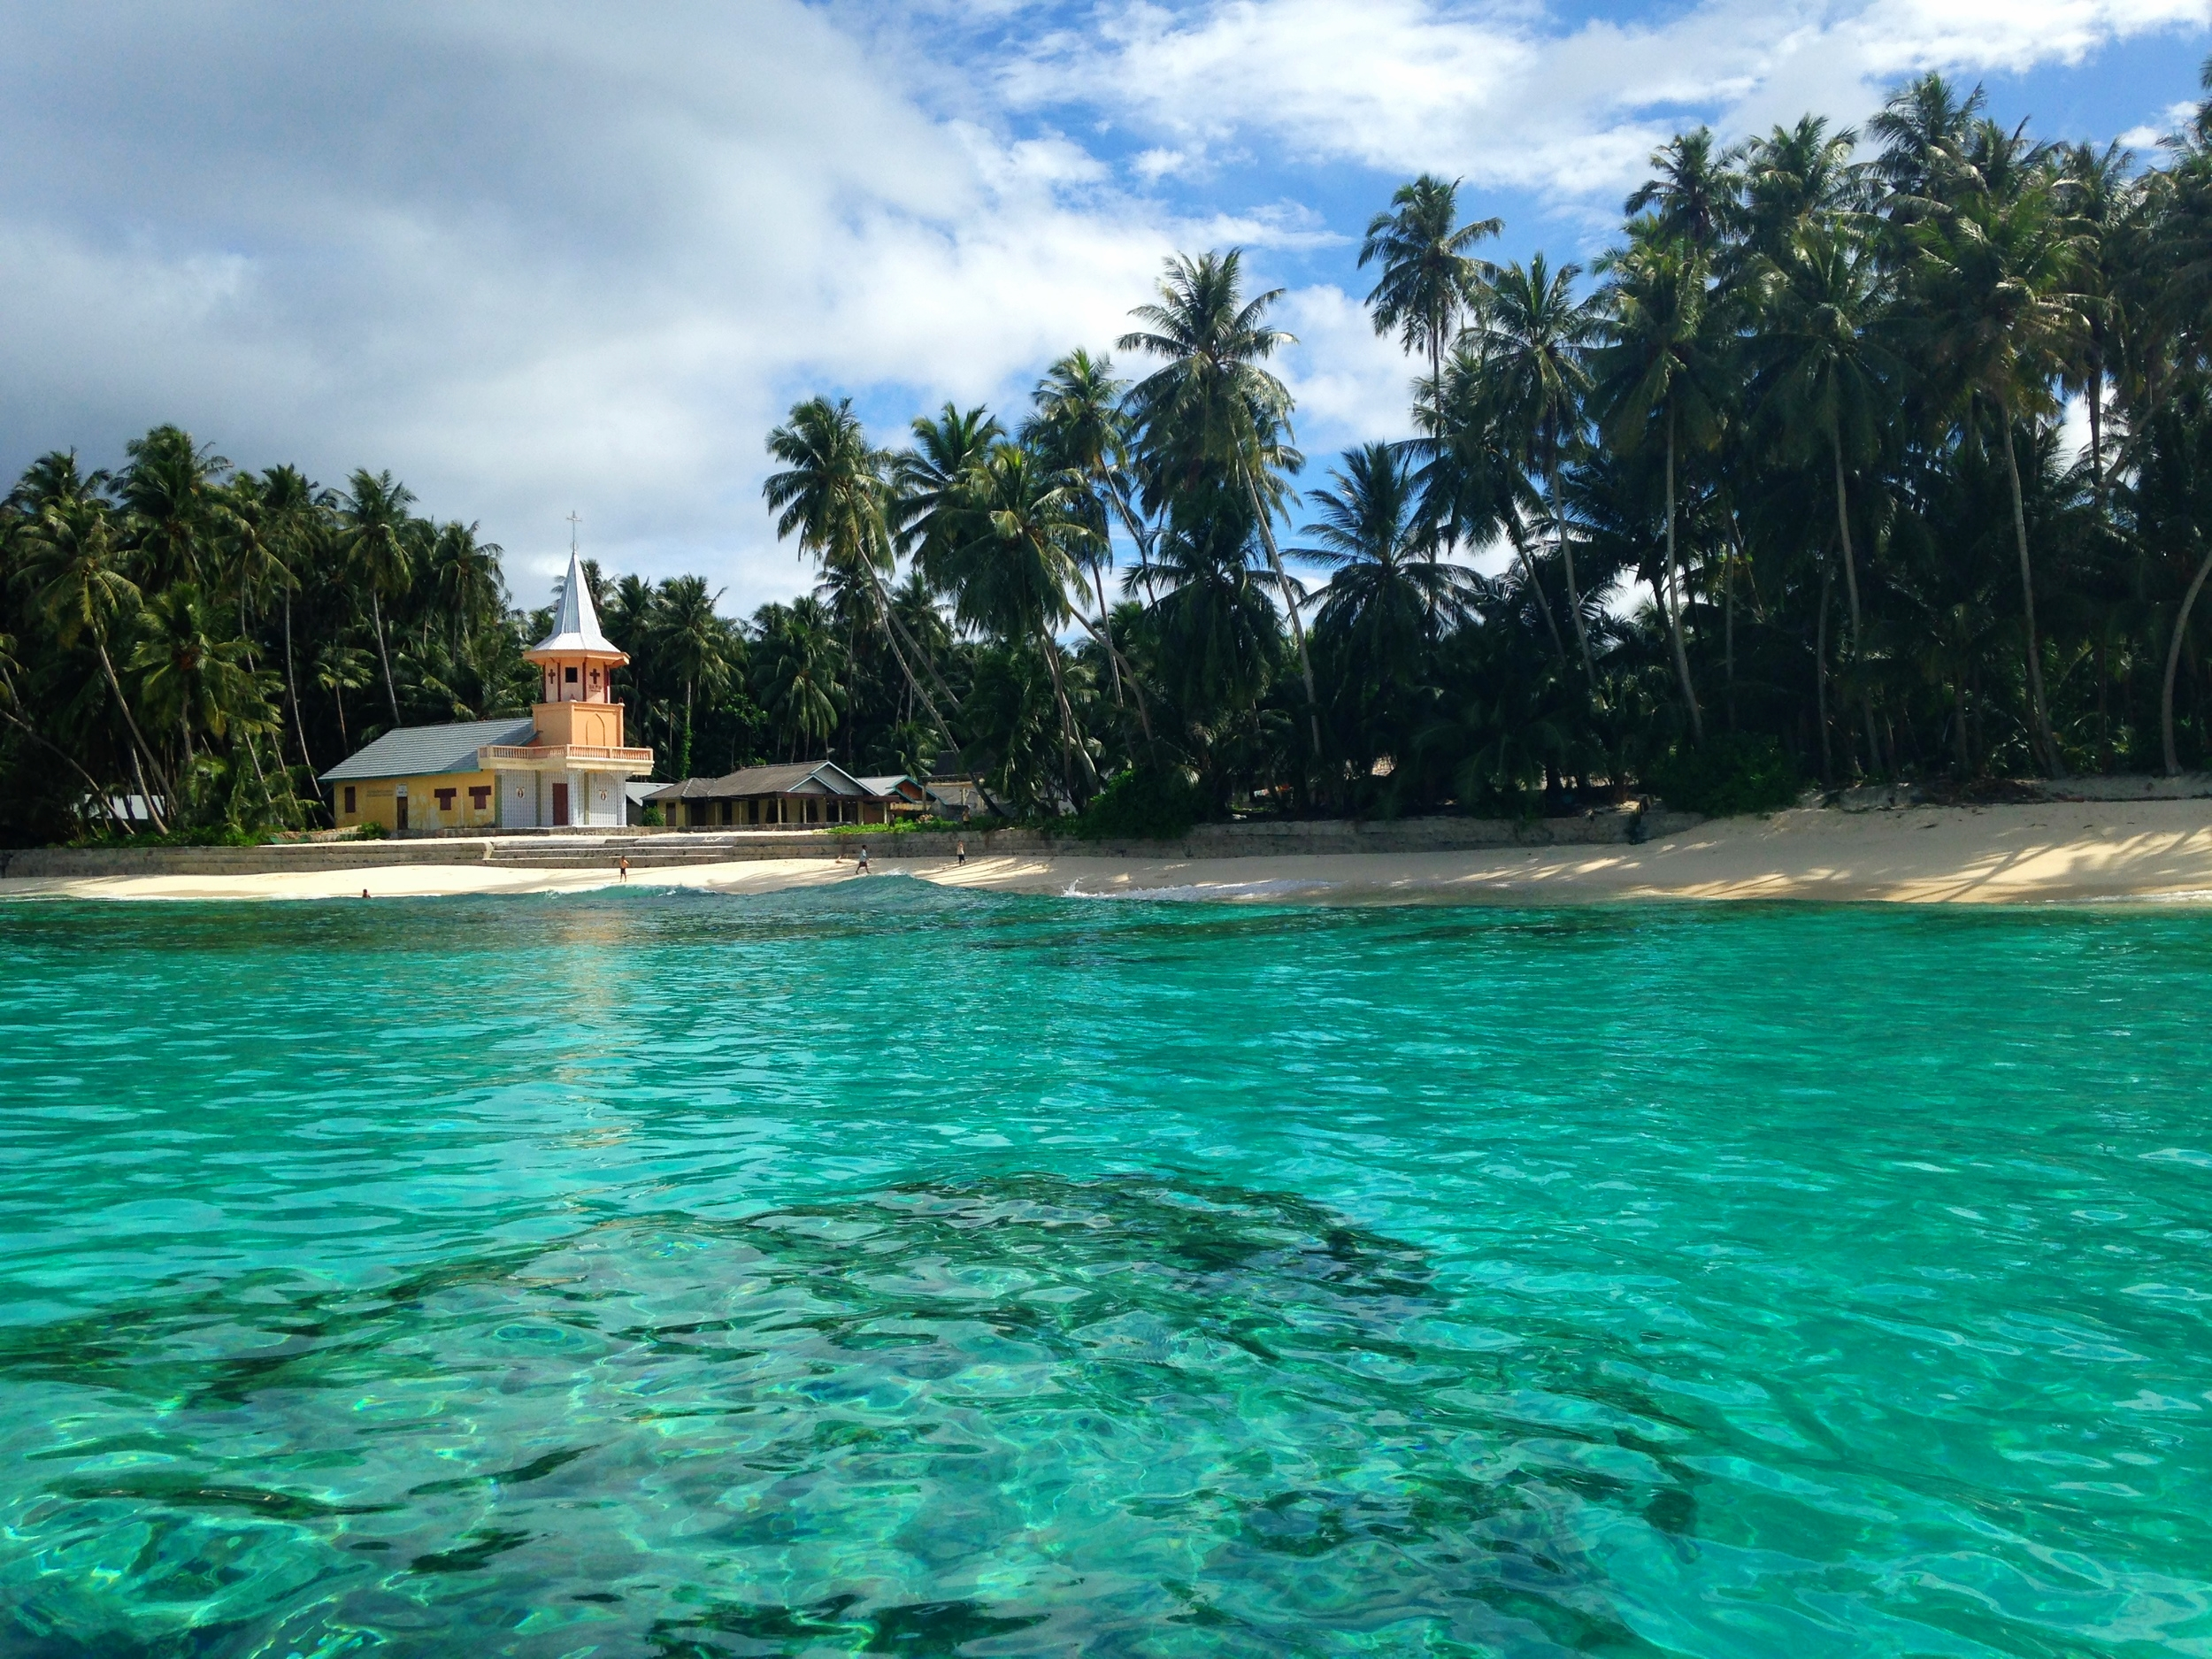 TELO ISLANDS, INDONESIA GALLERY 2   6.12.15